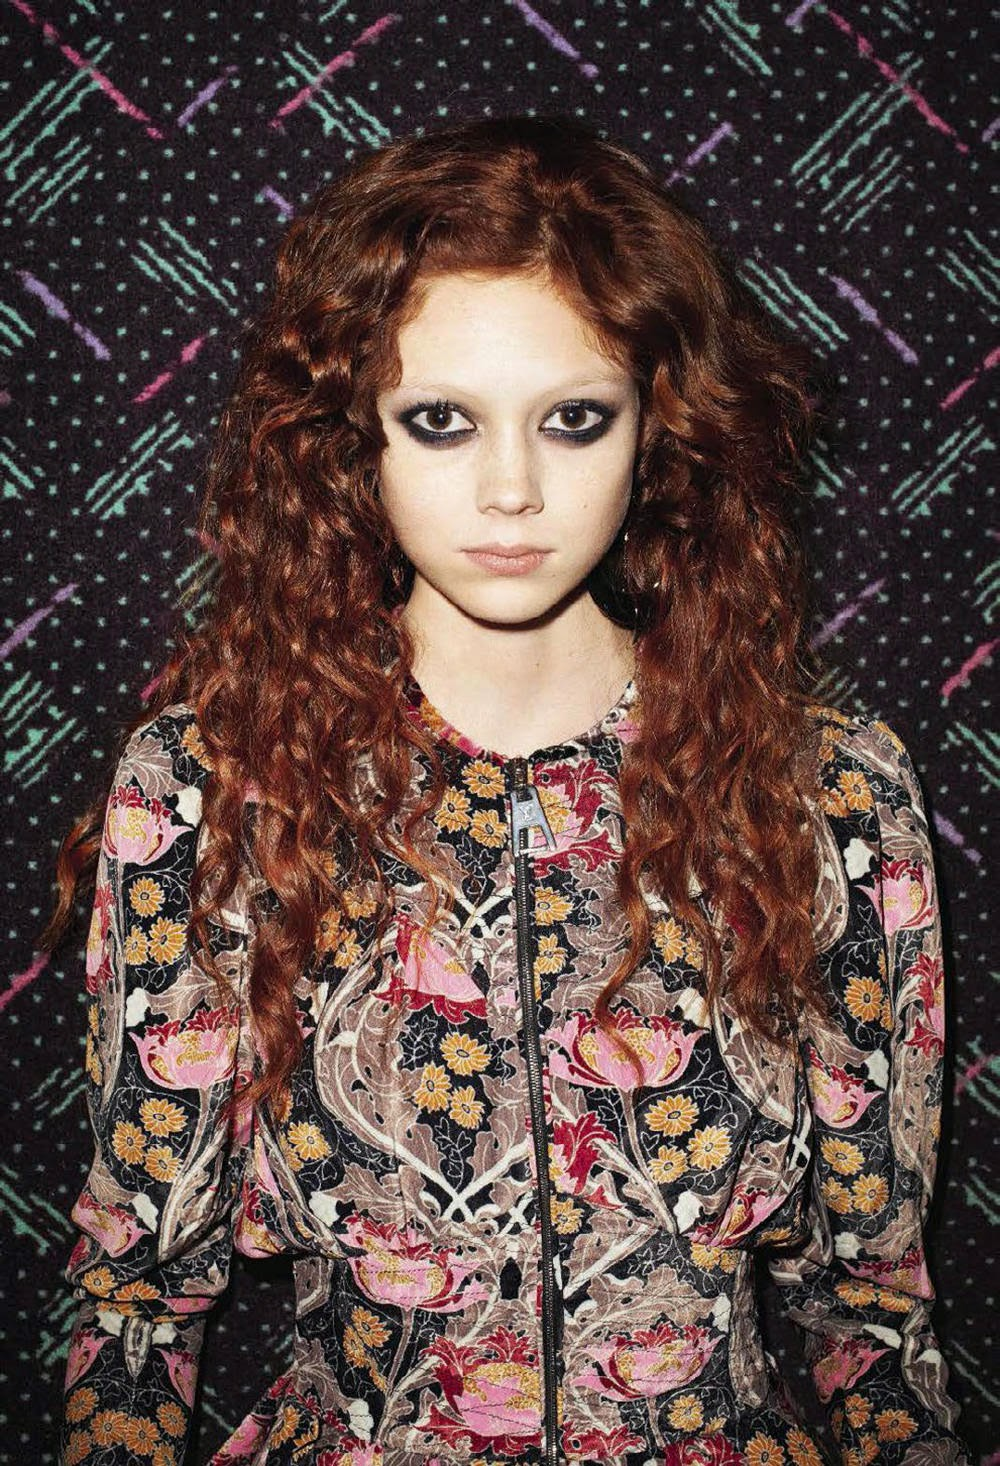 Model @ Natalie Westling by Terry Richardson for Vogue Italia, March 2015